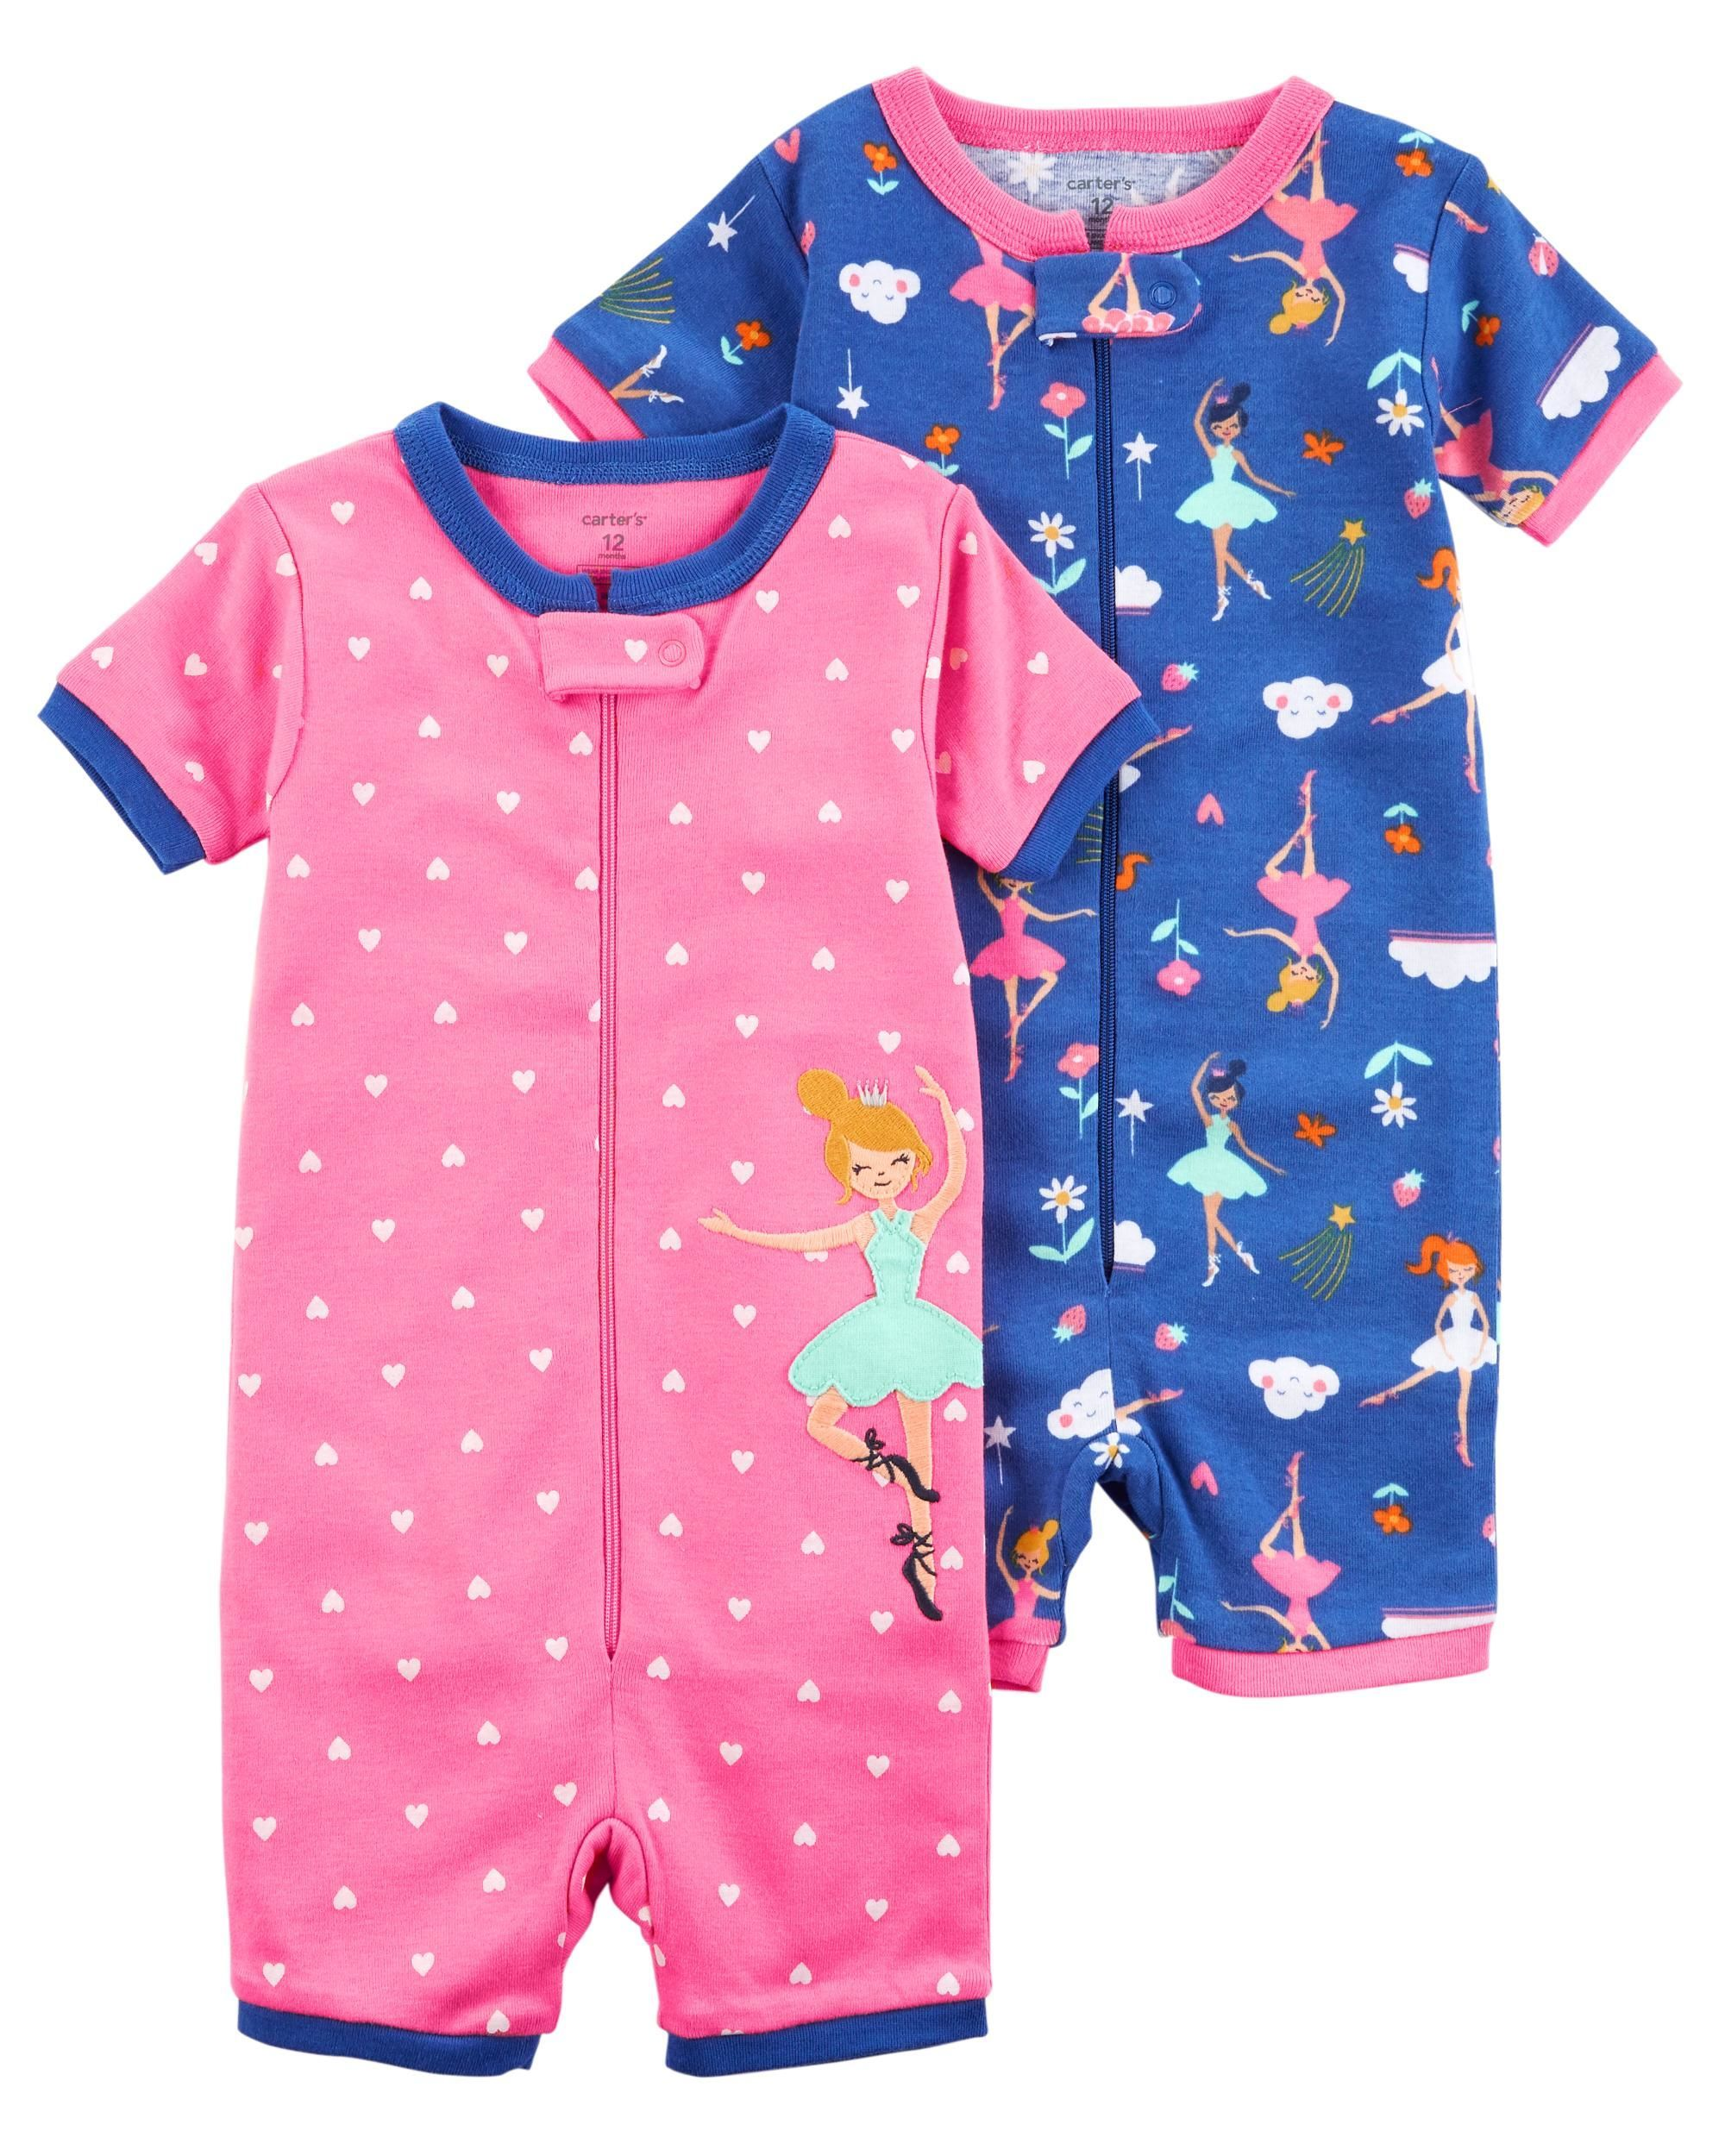 e3b90343c294 2-Pack Zip-Up Snug Fit Cotton Romper PJs